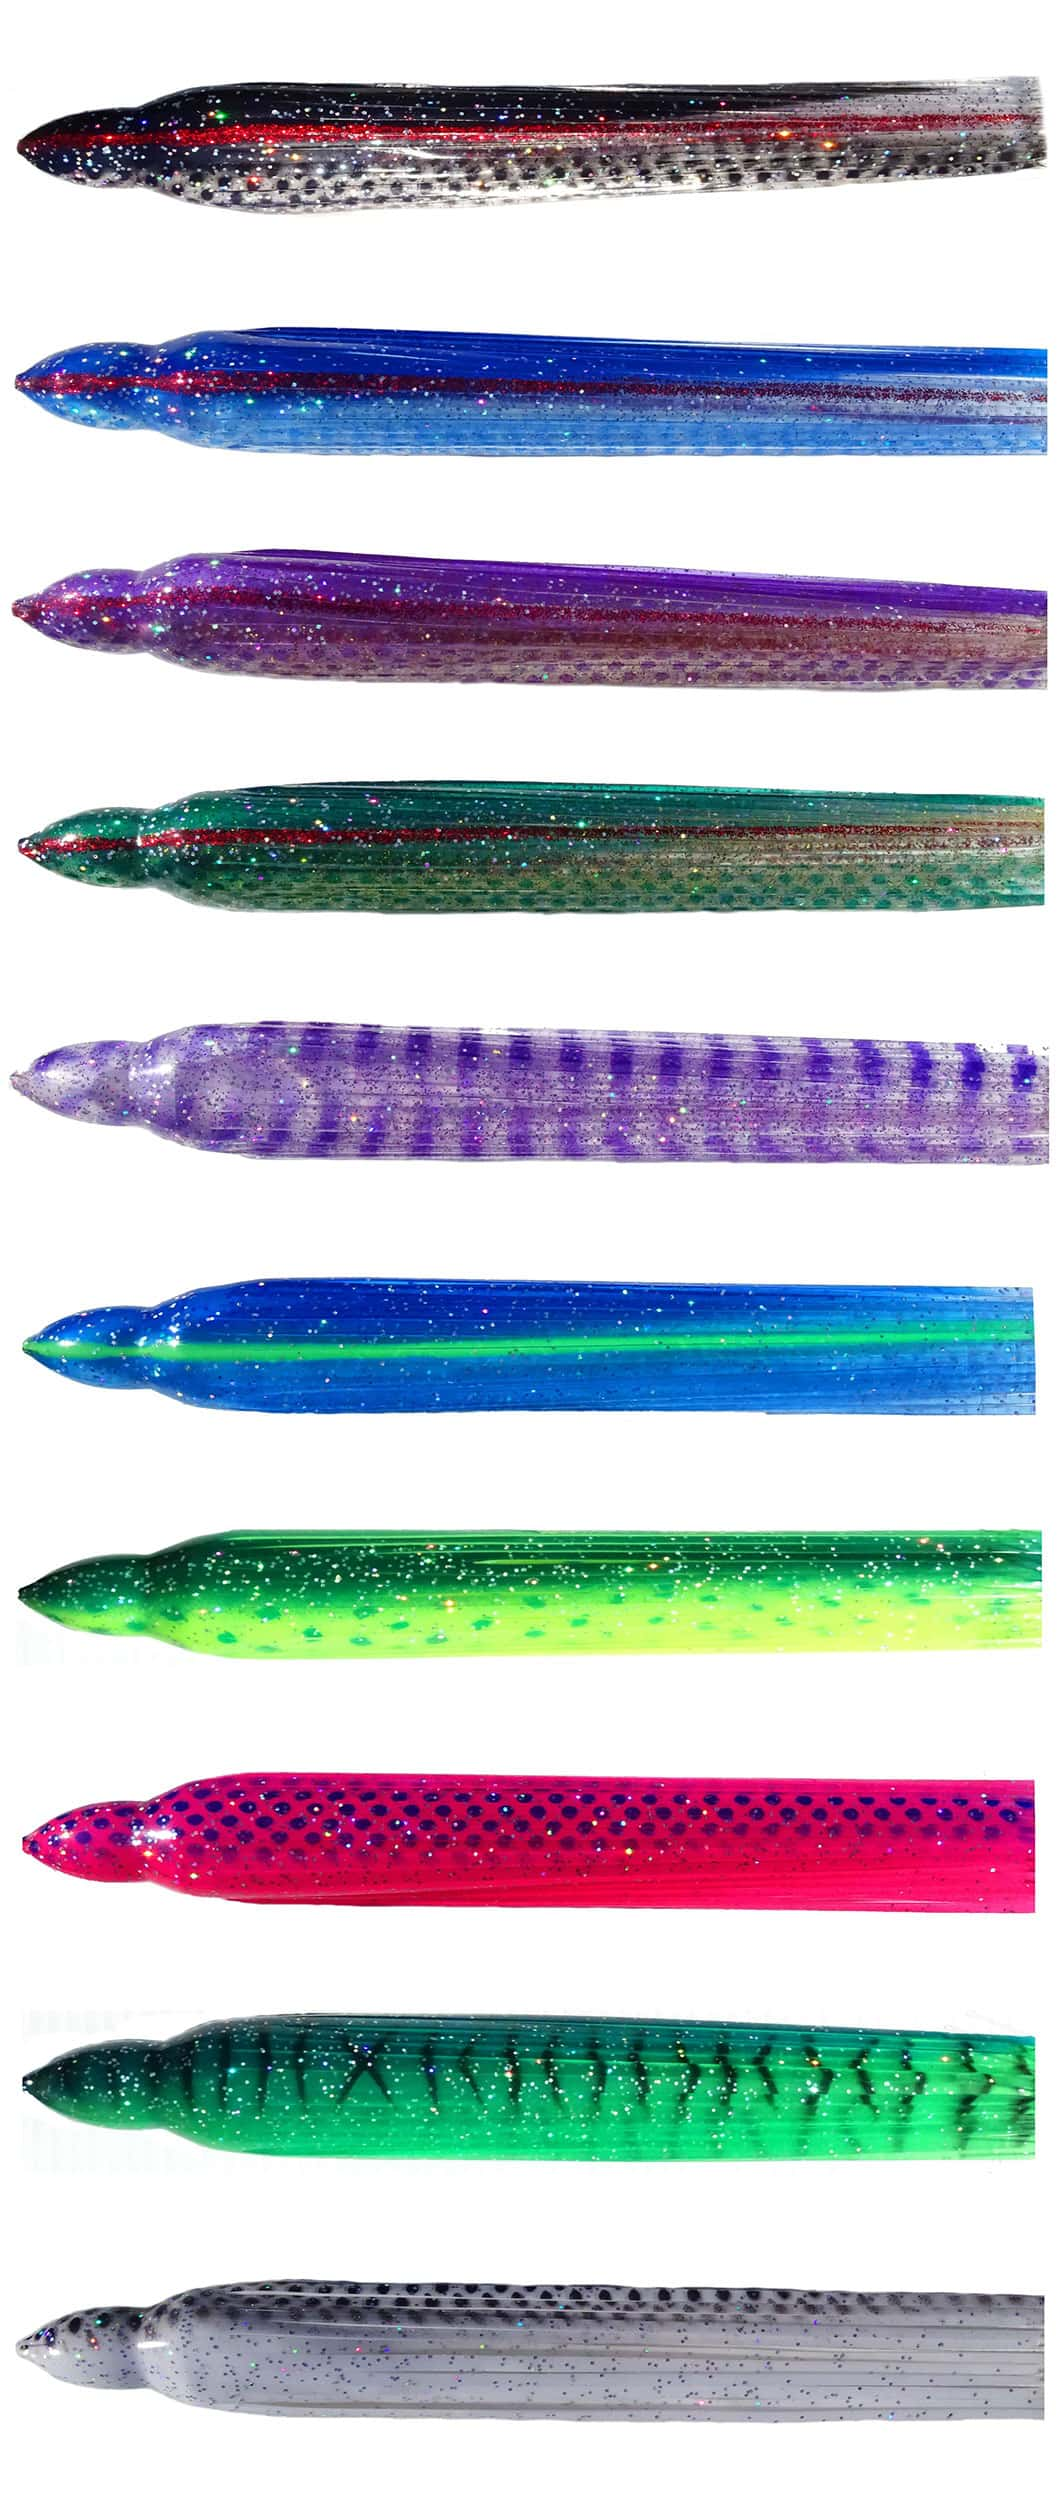 Best skirts for marlin - Best trolling skirts - Tiamat Lures